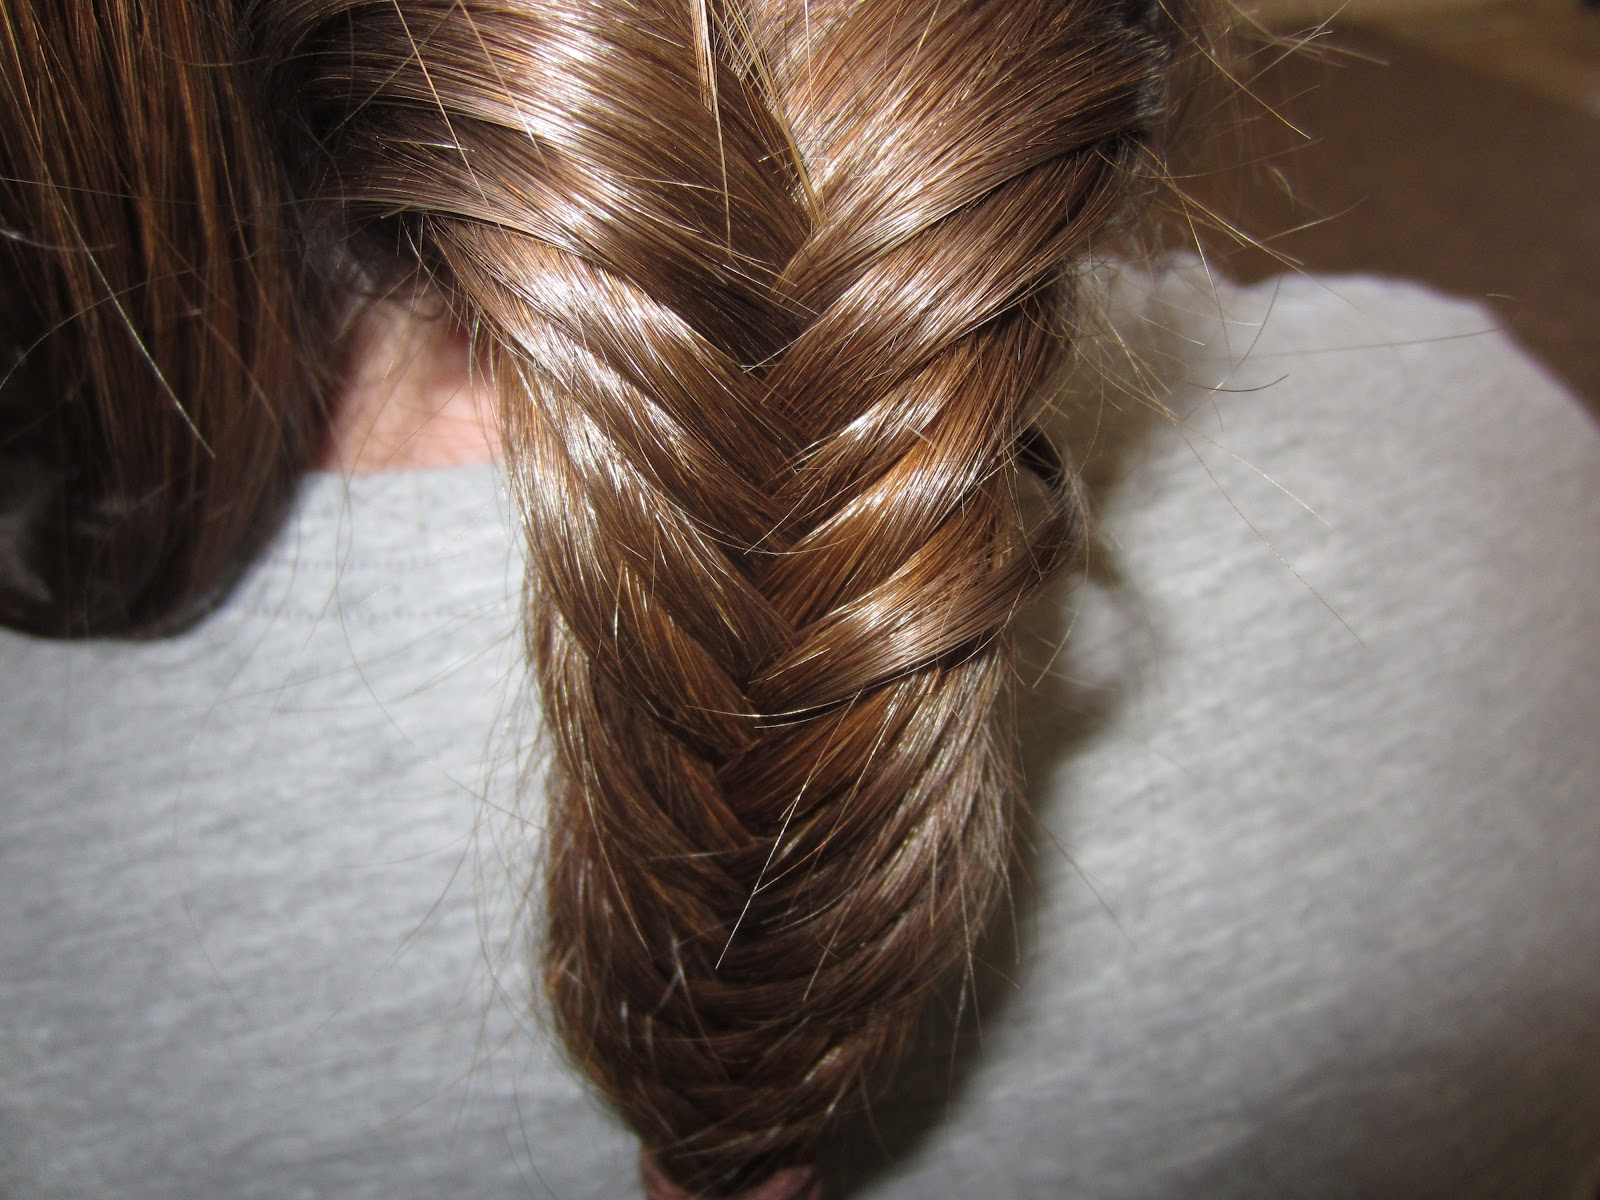 2 SISTERS HAIRSTYLES: Different Kinds of Braids